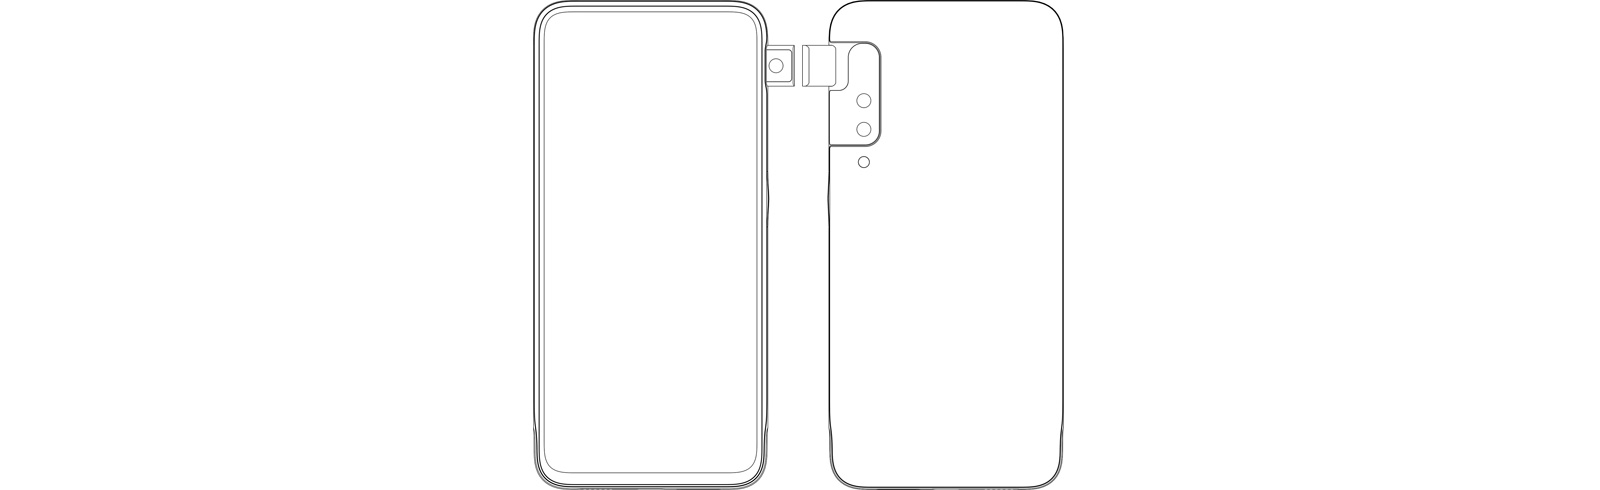 Oppo's side pop-up camera official patent images